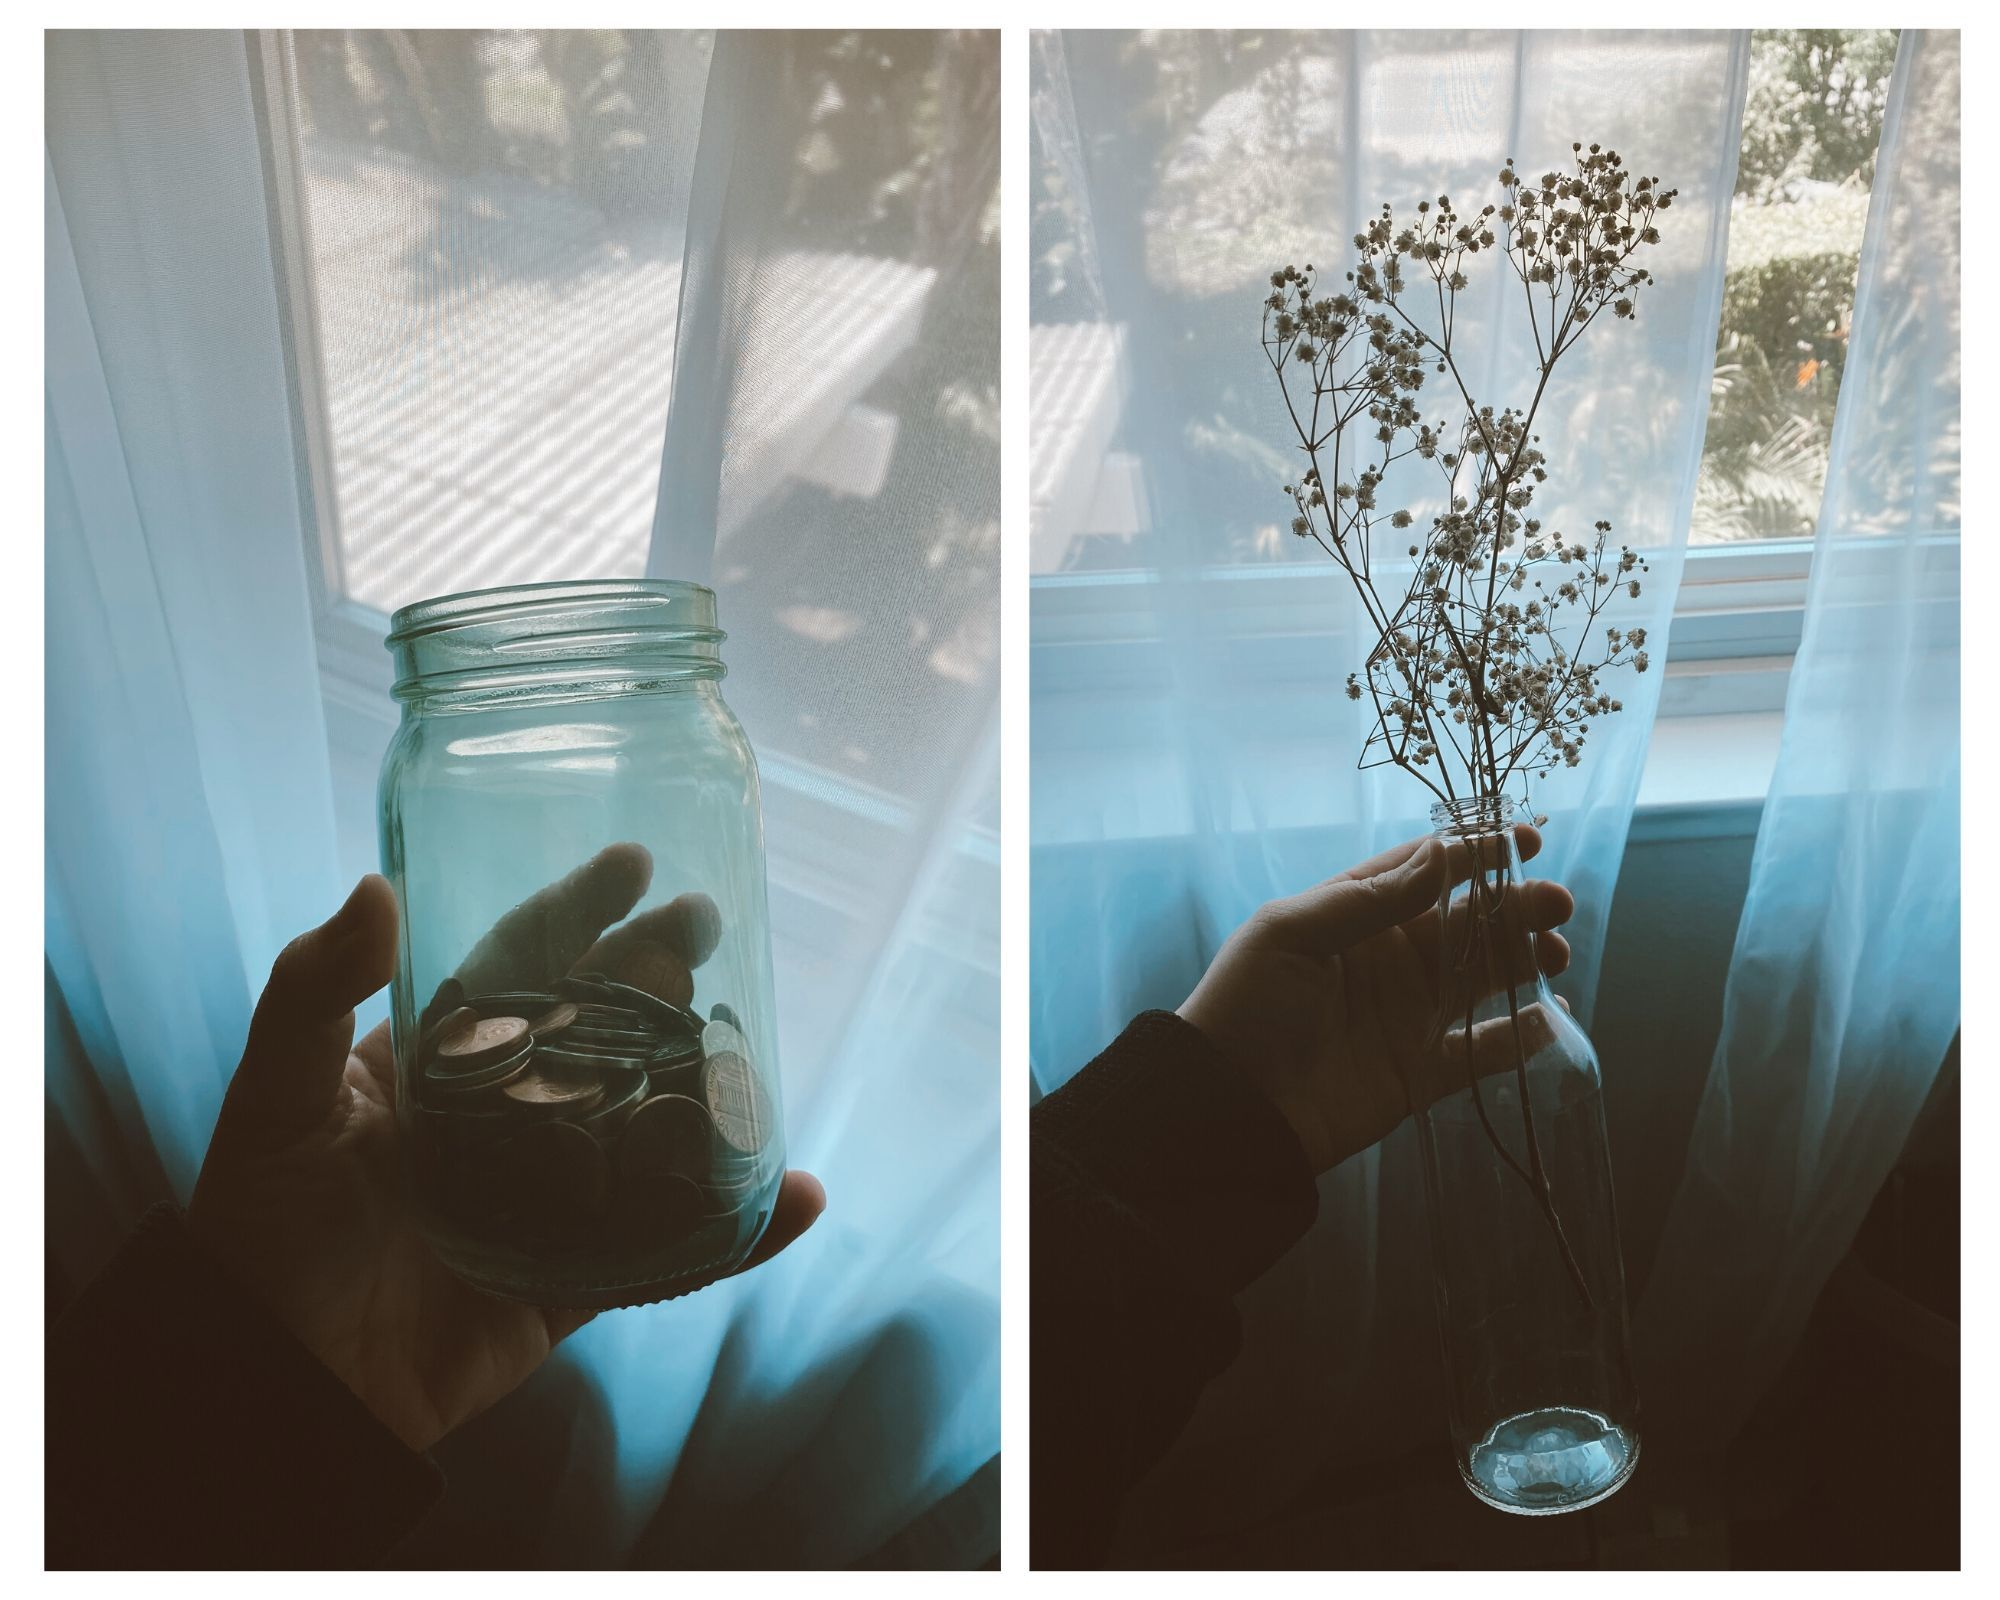 Bailey's repurposed glass bottles for coin jar and flower boquets